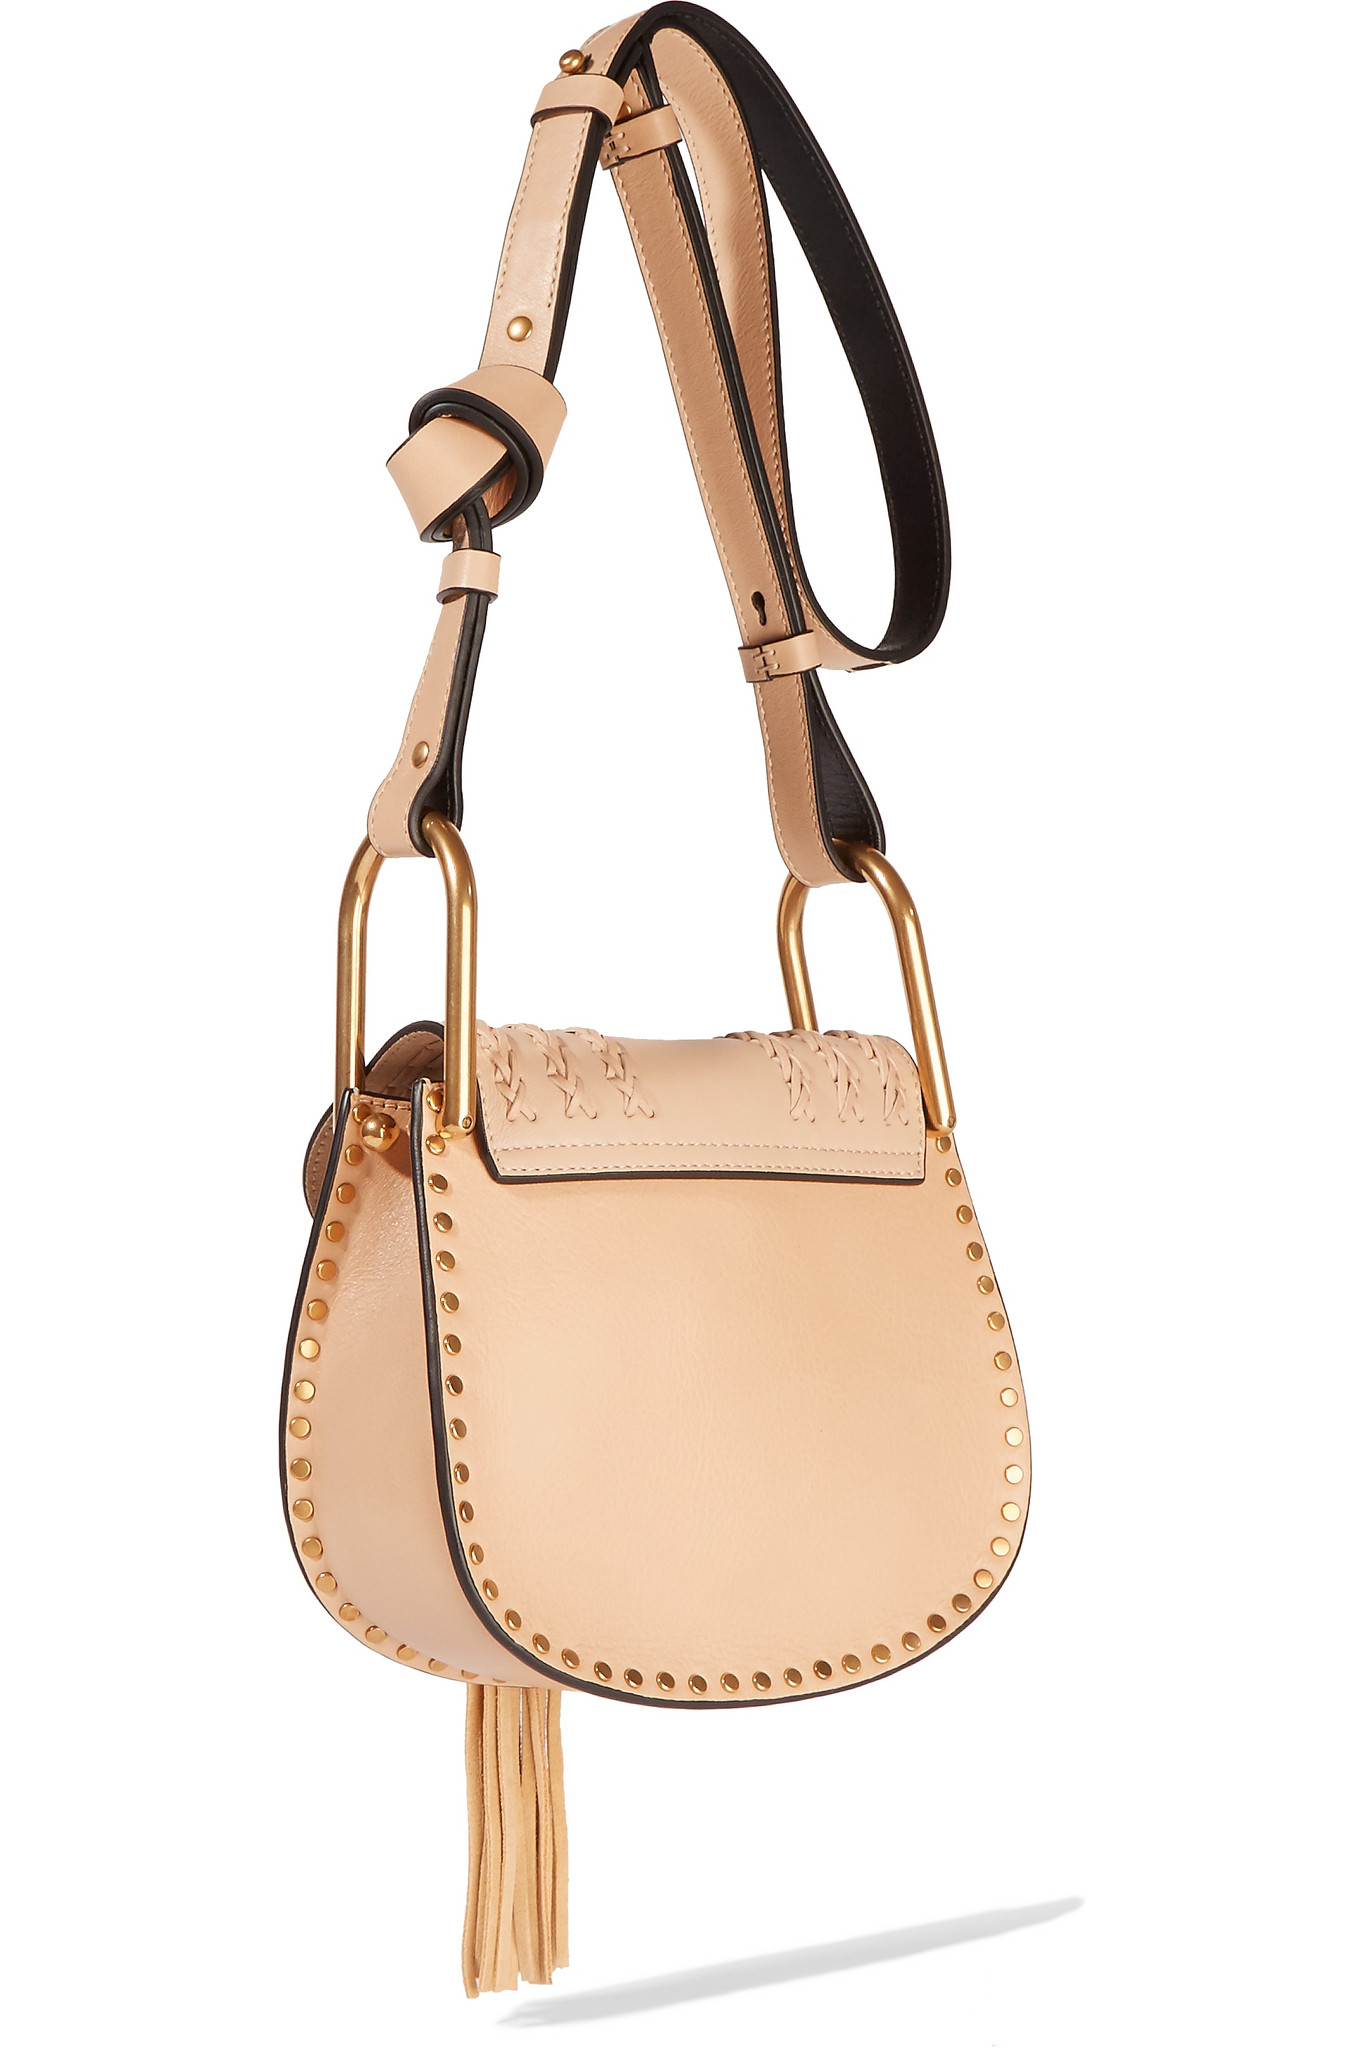 Chlo�� Chlo�� Hudson Mini Whipstitched Leather Shoulder Bag in Beige ...